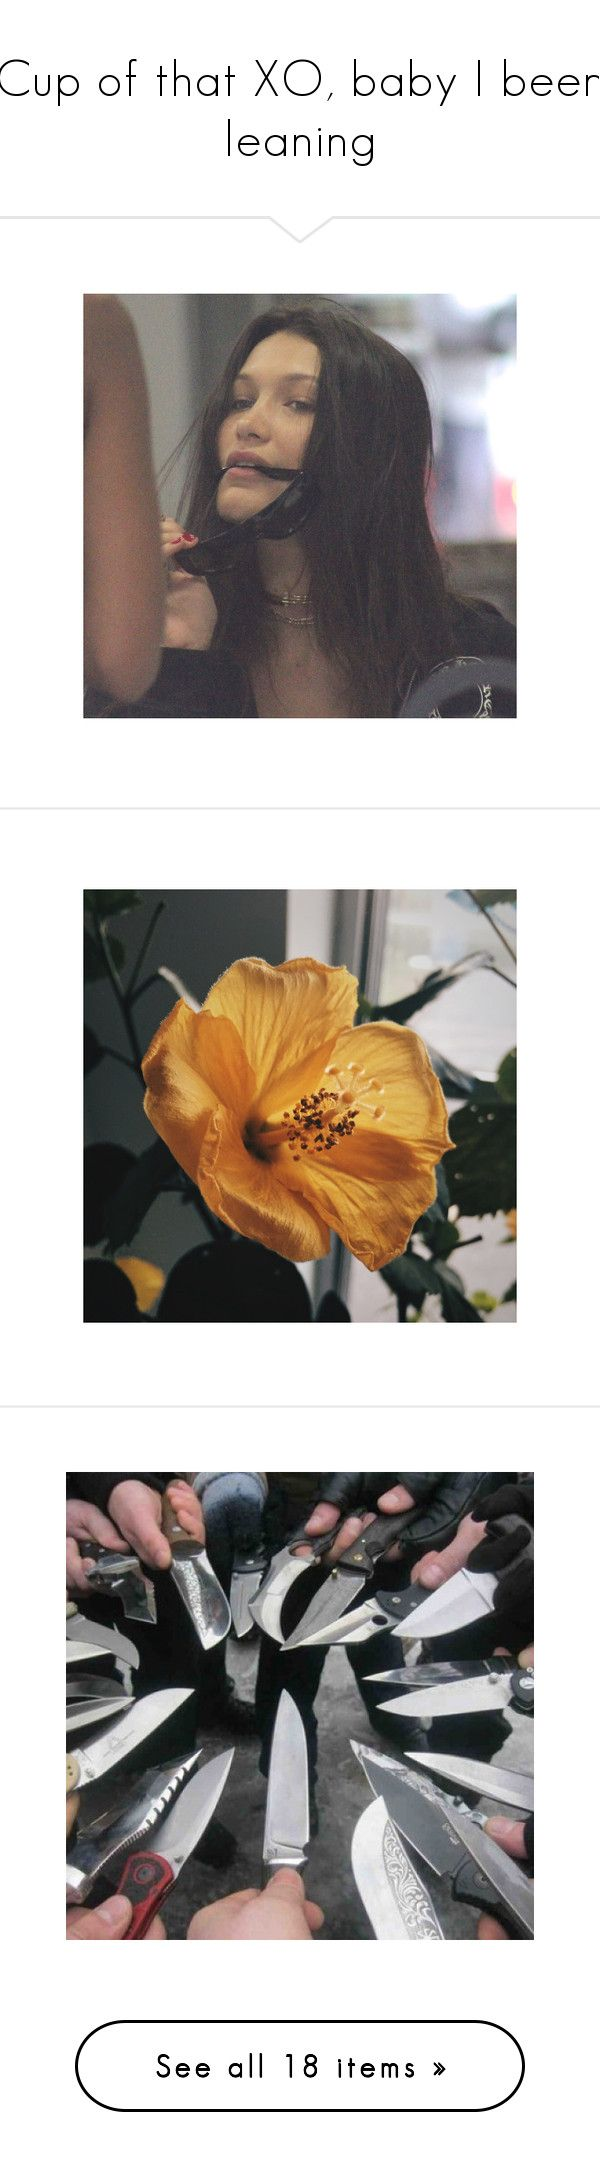 """""""Cup of that XO, baby I been leaning"""" by aymami ❤ liked on Polyvore featuring bella hadid, pictures, filler, images, people, photos, pictures - yellow, flowers, backgrounds and weapons"""